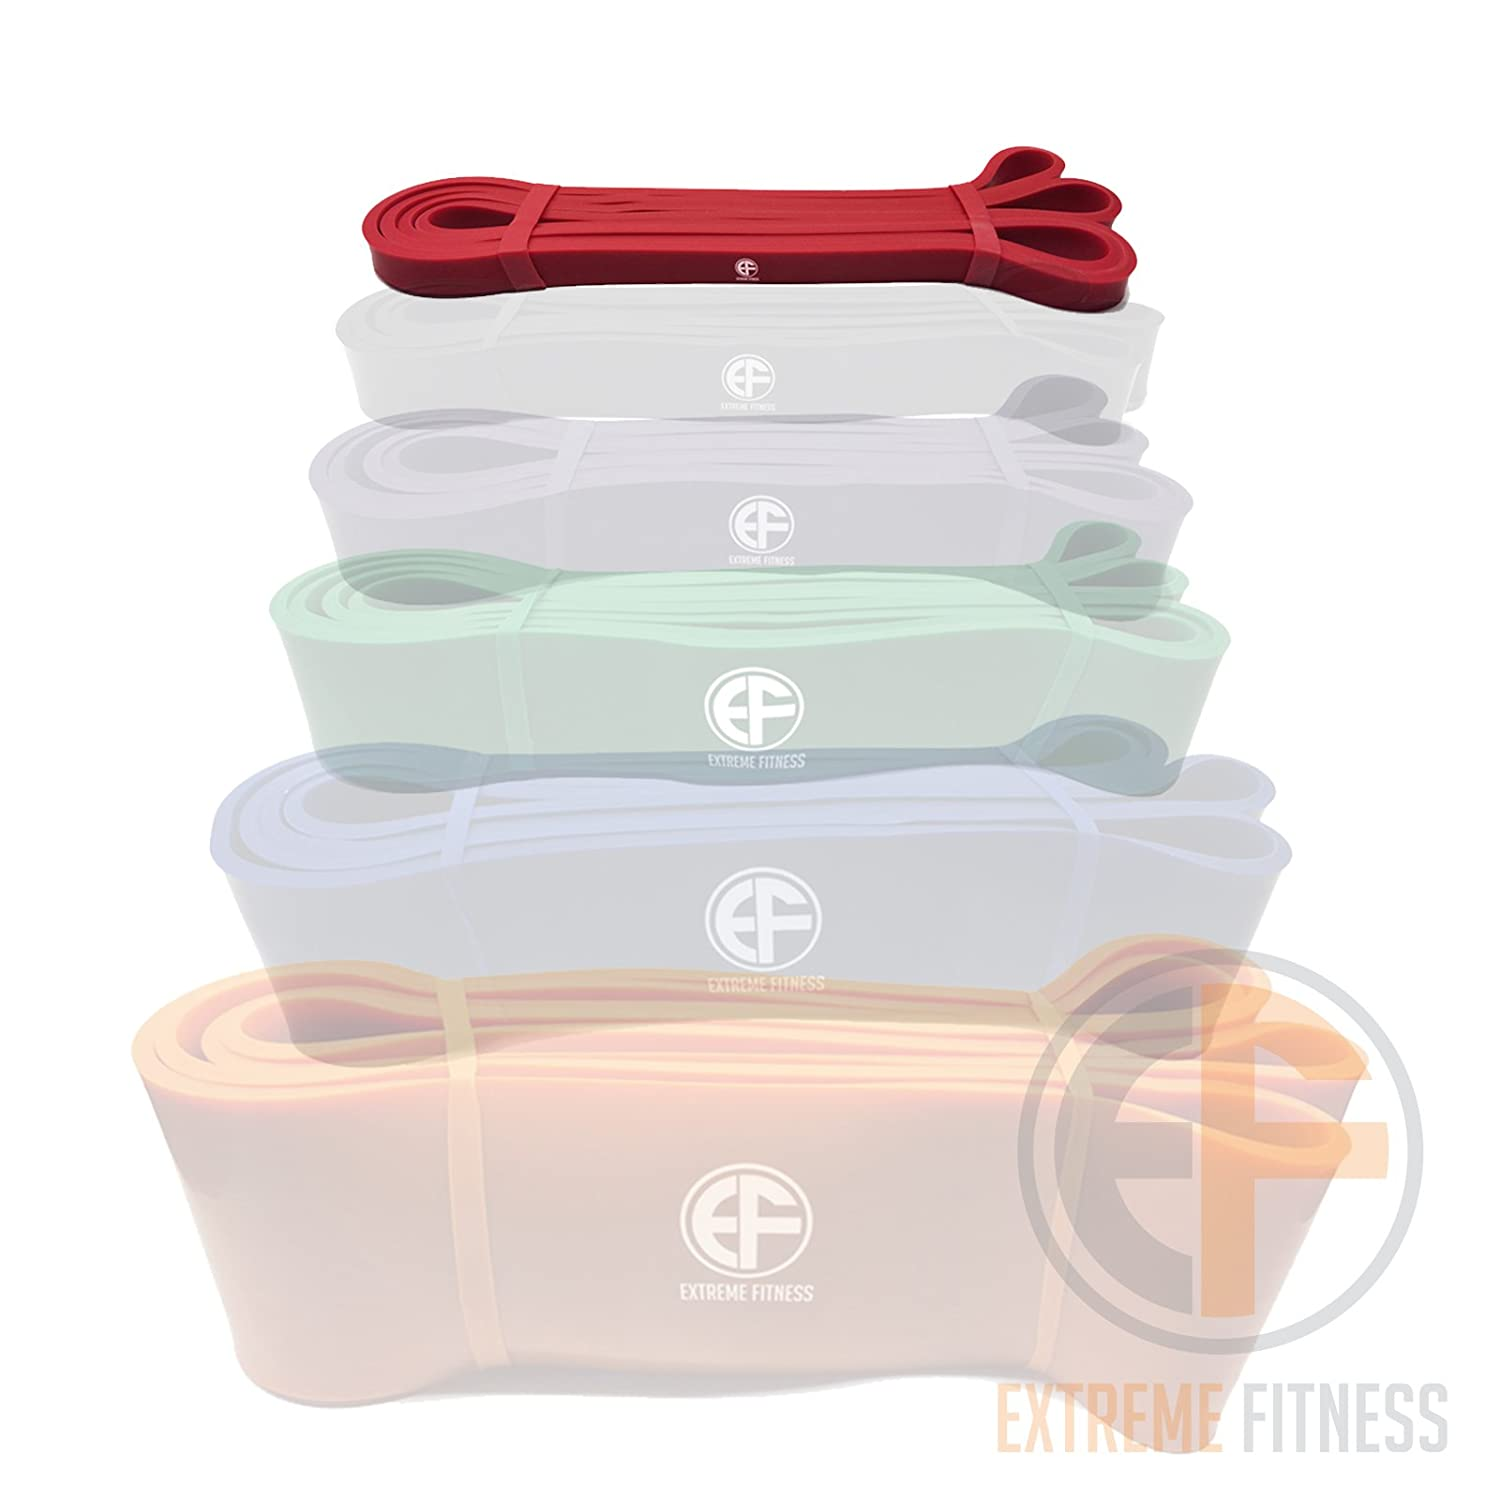 EXTREME FITNESS Resistance Power Loop Bands Premium Latex Assisted Pull Up Fitness Exercise Bands Workout Strap Exercise Crossfit Bands for Strength Weight Training and Yoga